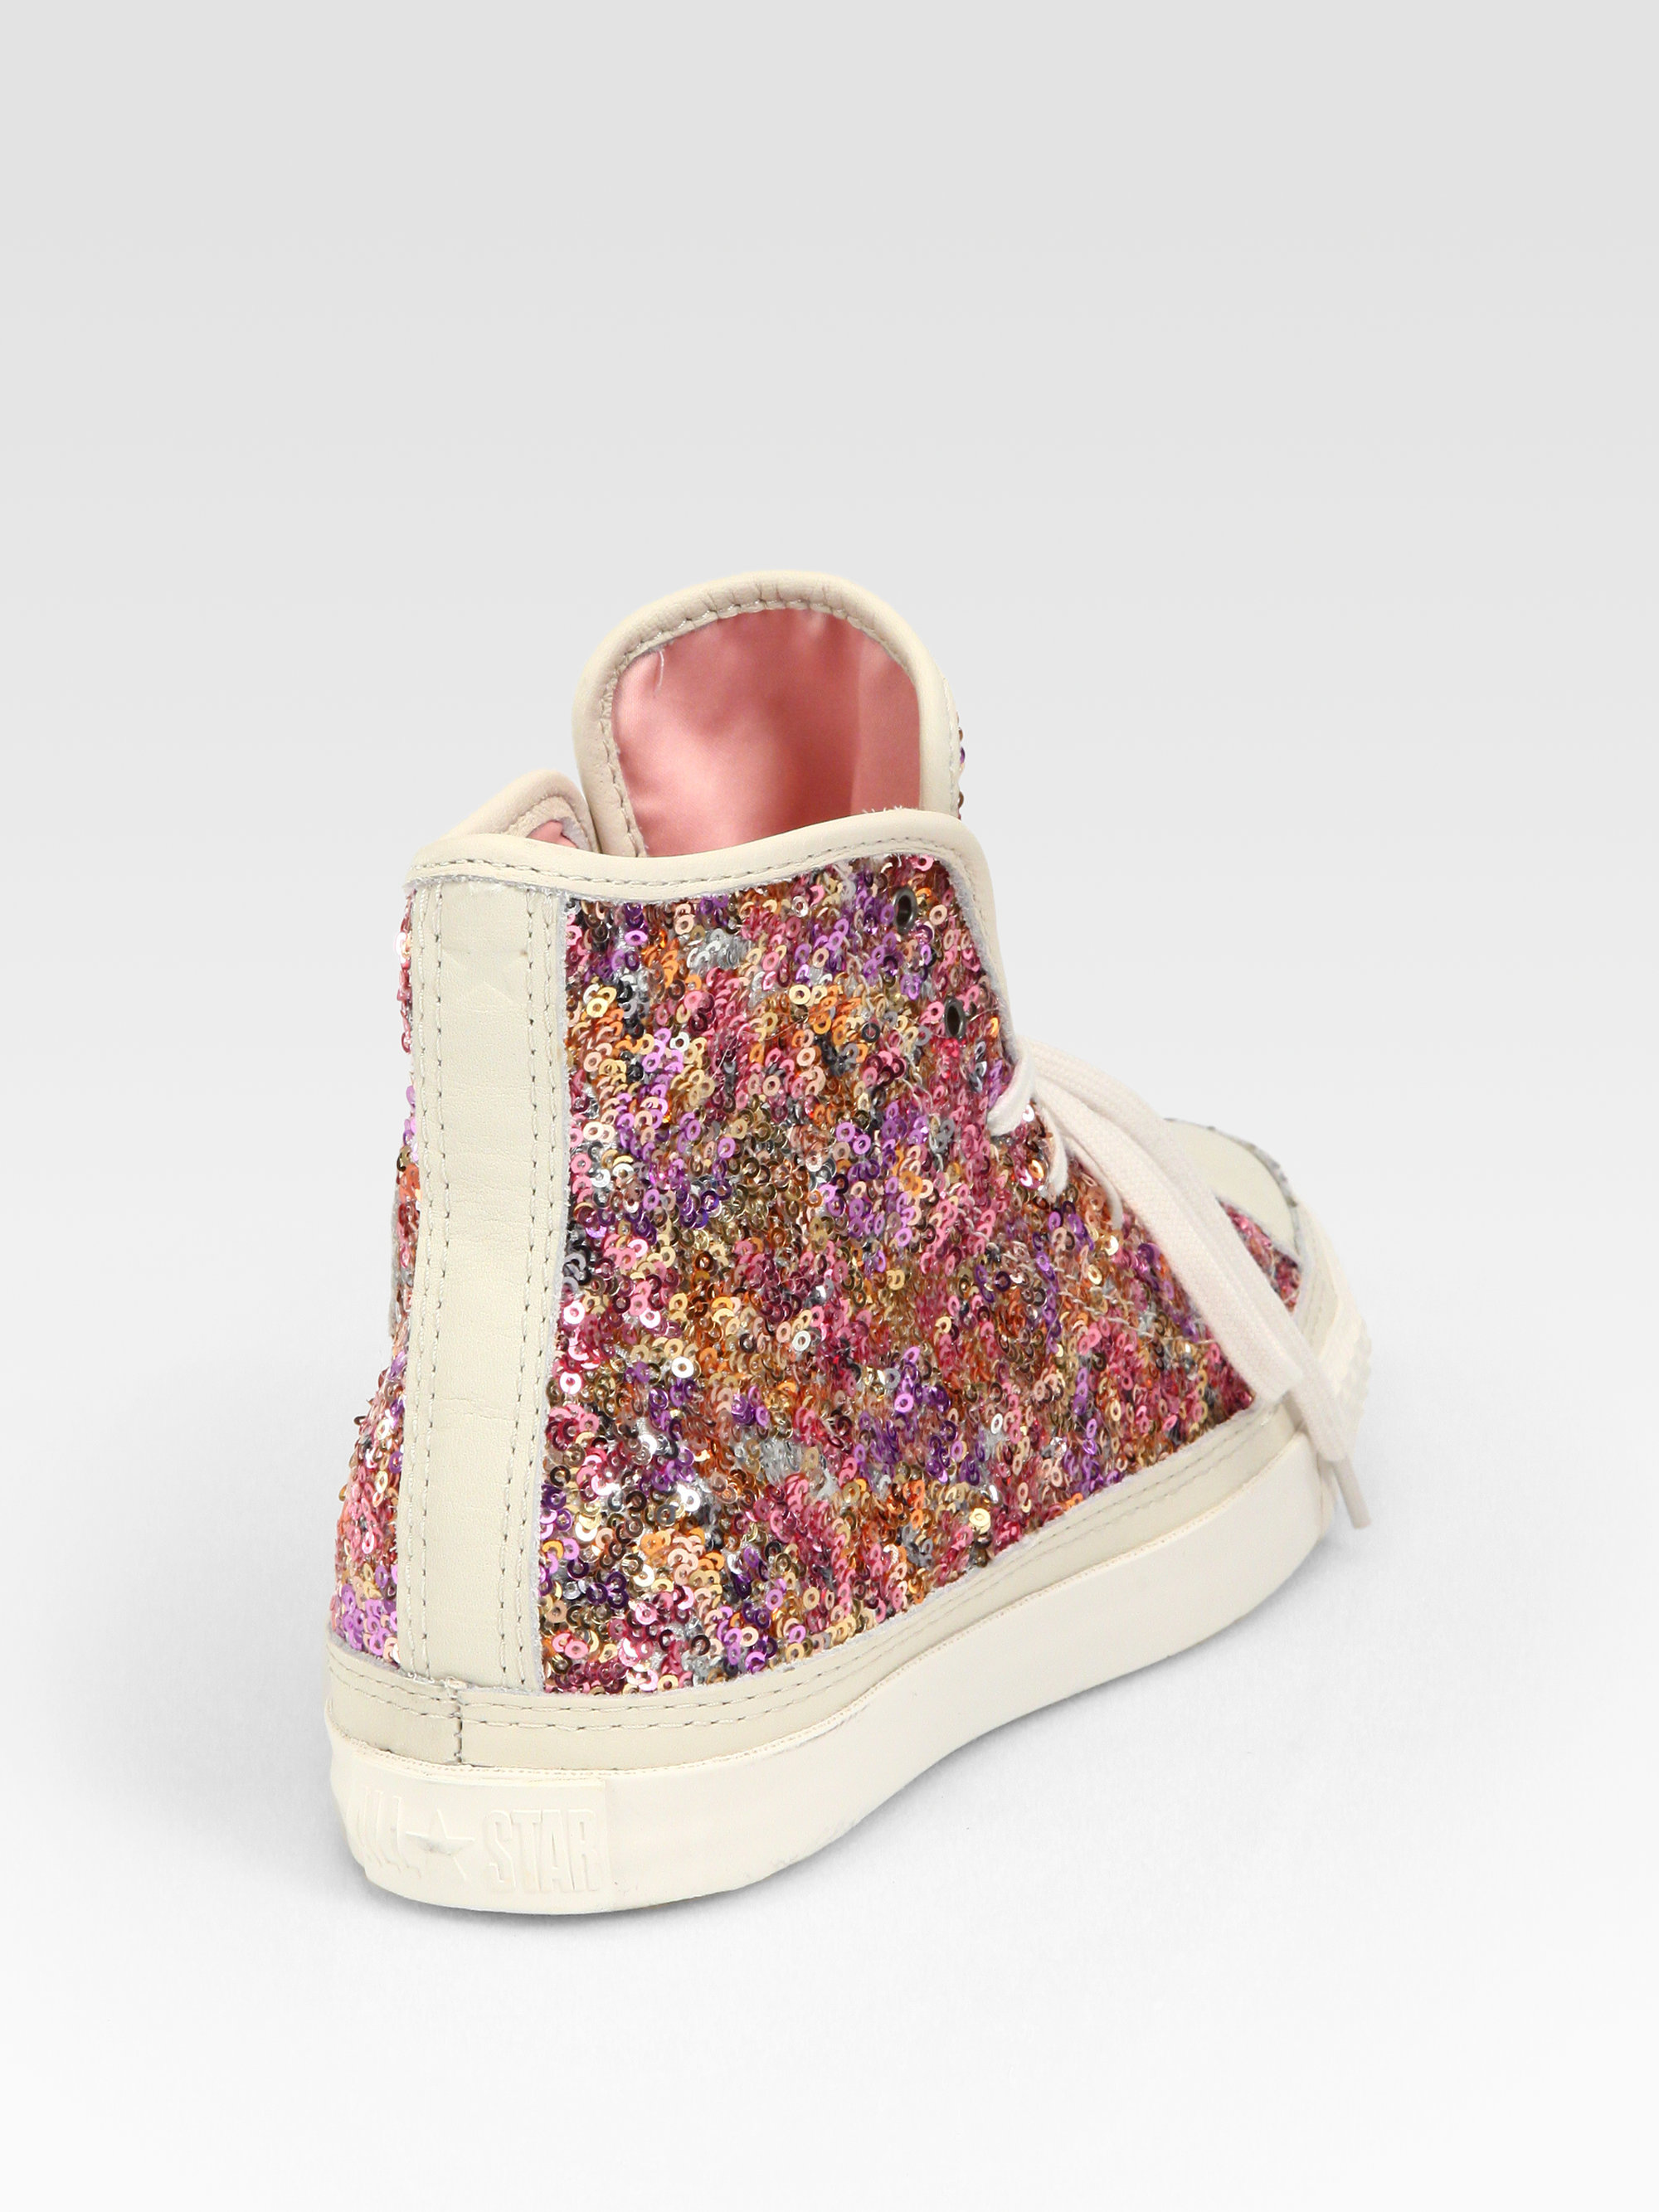 Lyst - Converse Sequin Hightop Sneakers in Pink 7558a70e3